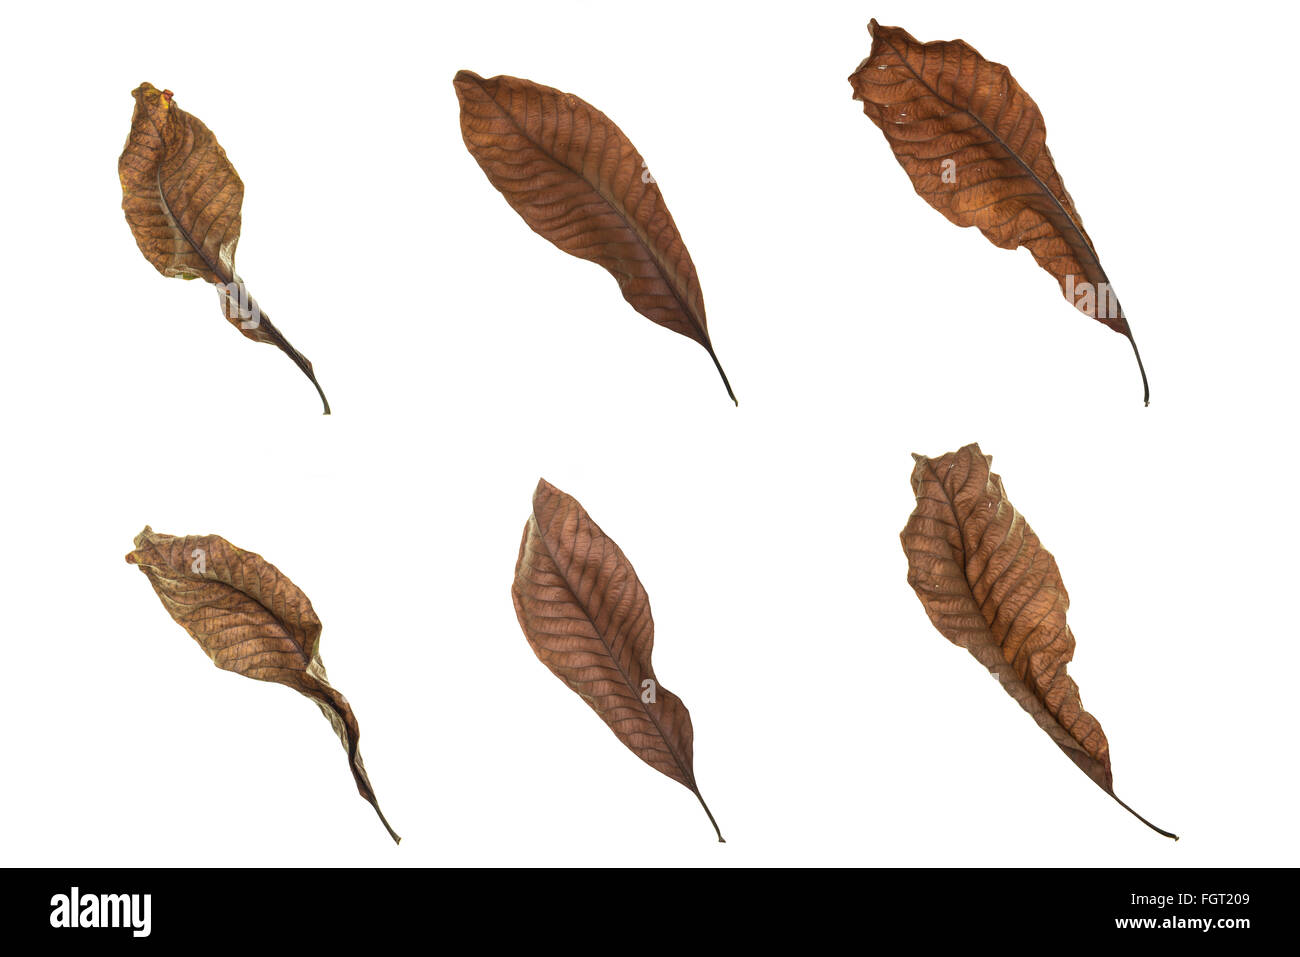 Set of dry leaves isolate on white background - Stock Image